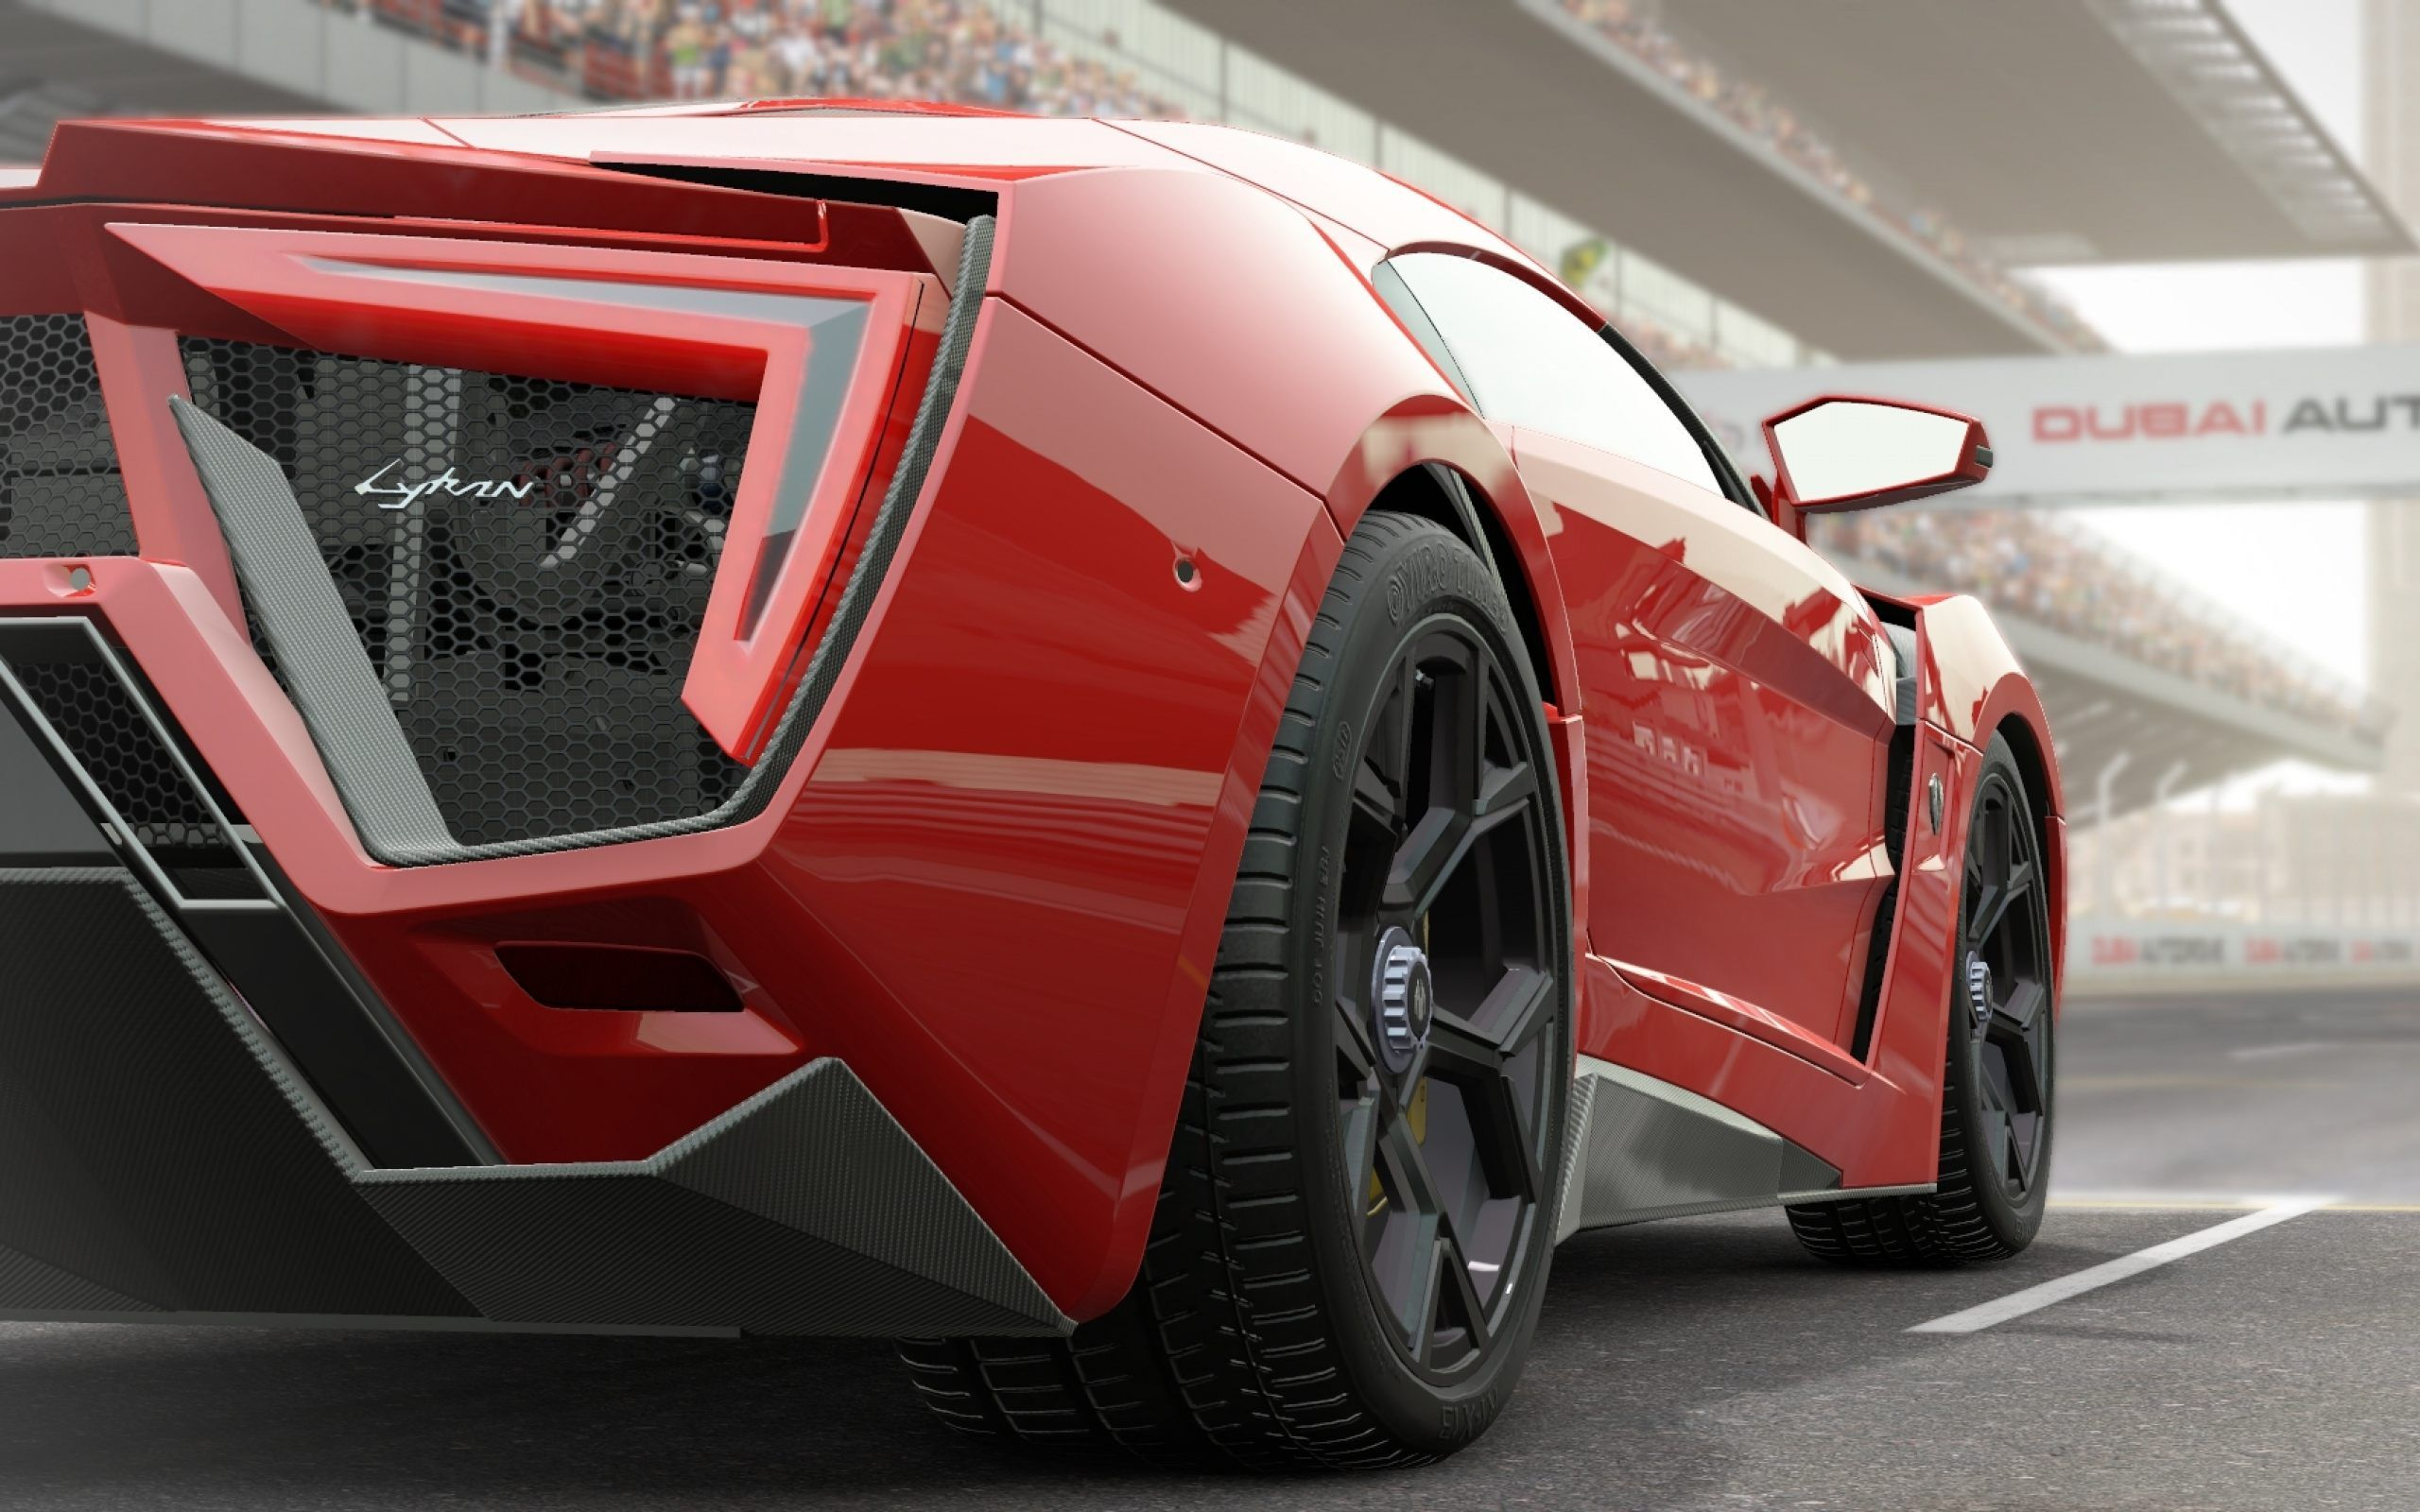 38 Lykan Hypersport Hd Wallpapers Backgrounds Wallpaper